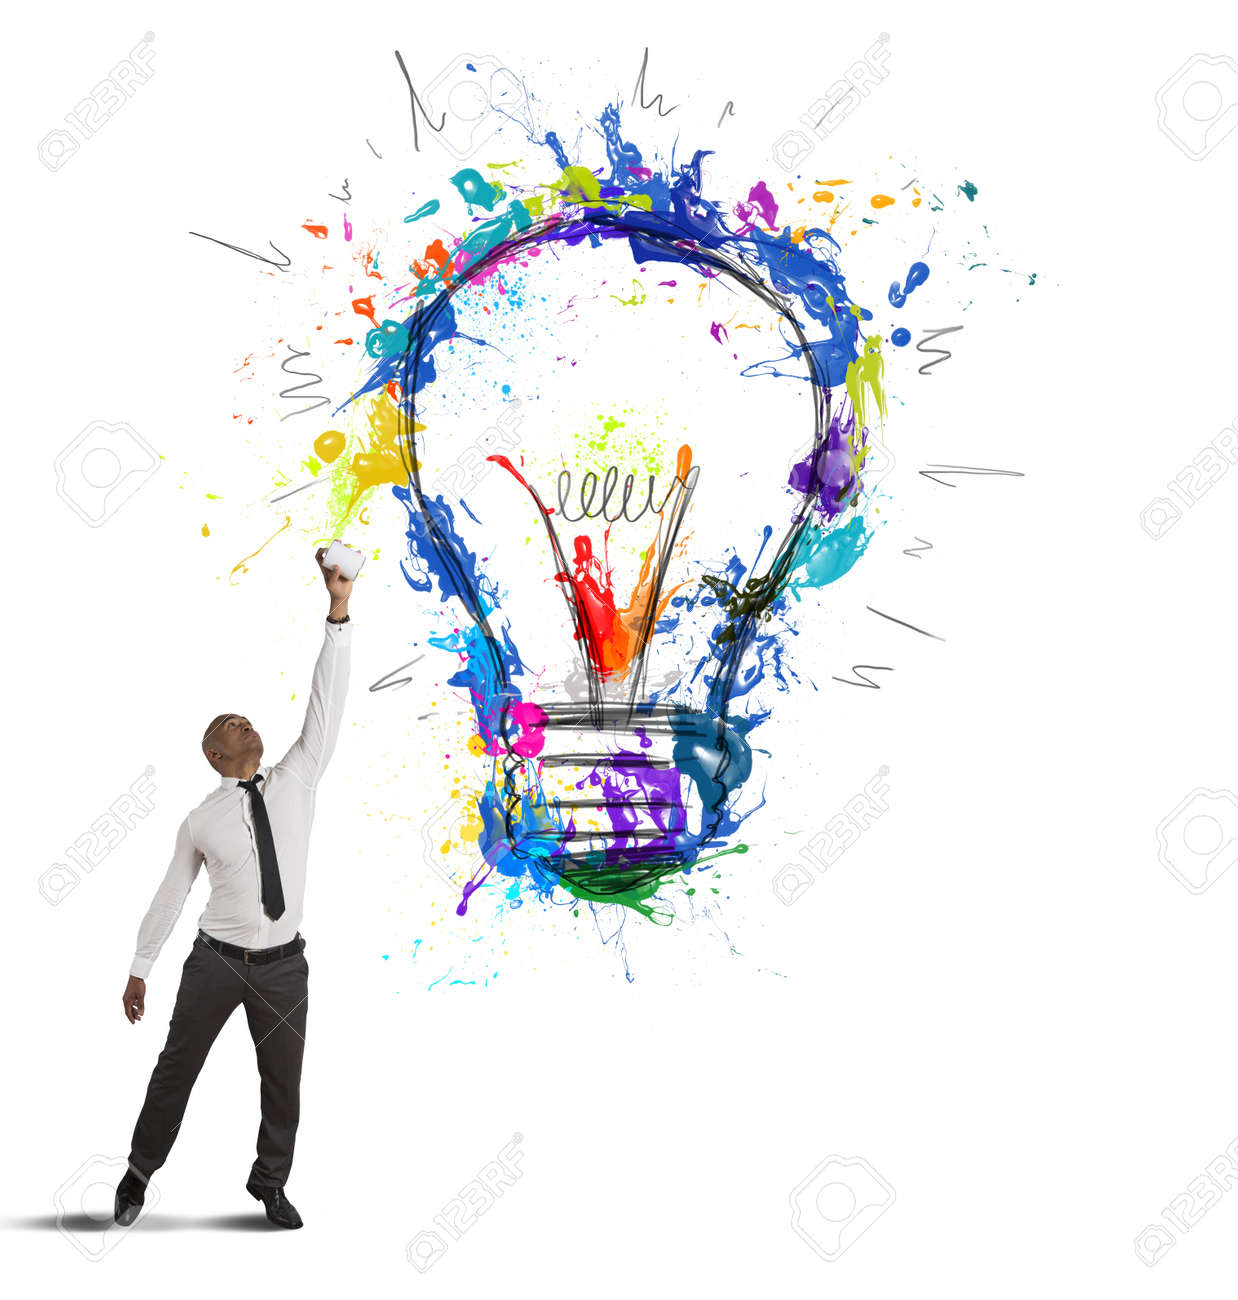 Concept of creative business idea with drawing businessman Stock Photo - 18917897